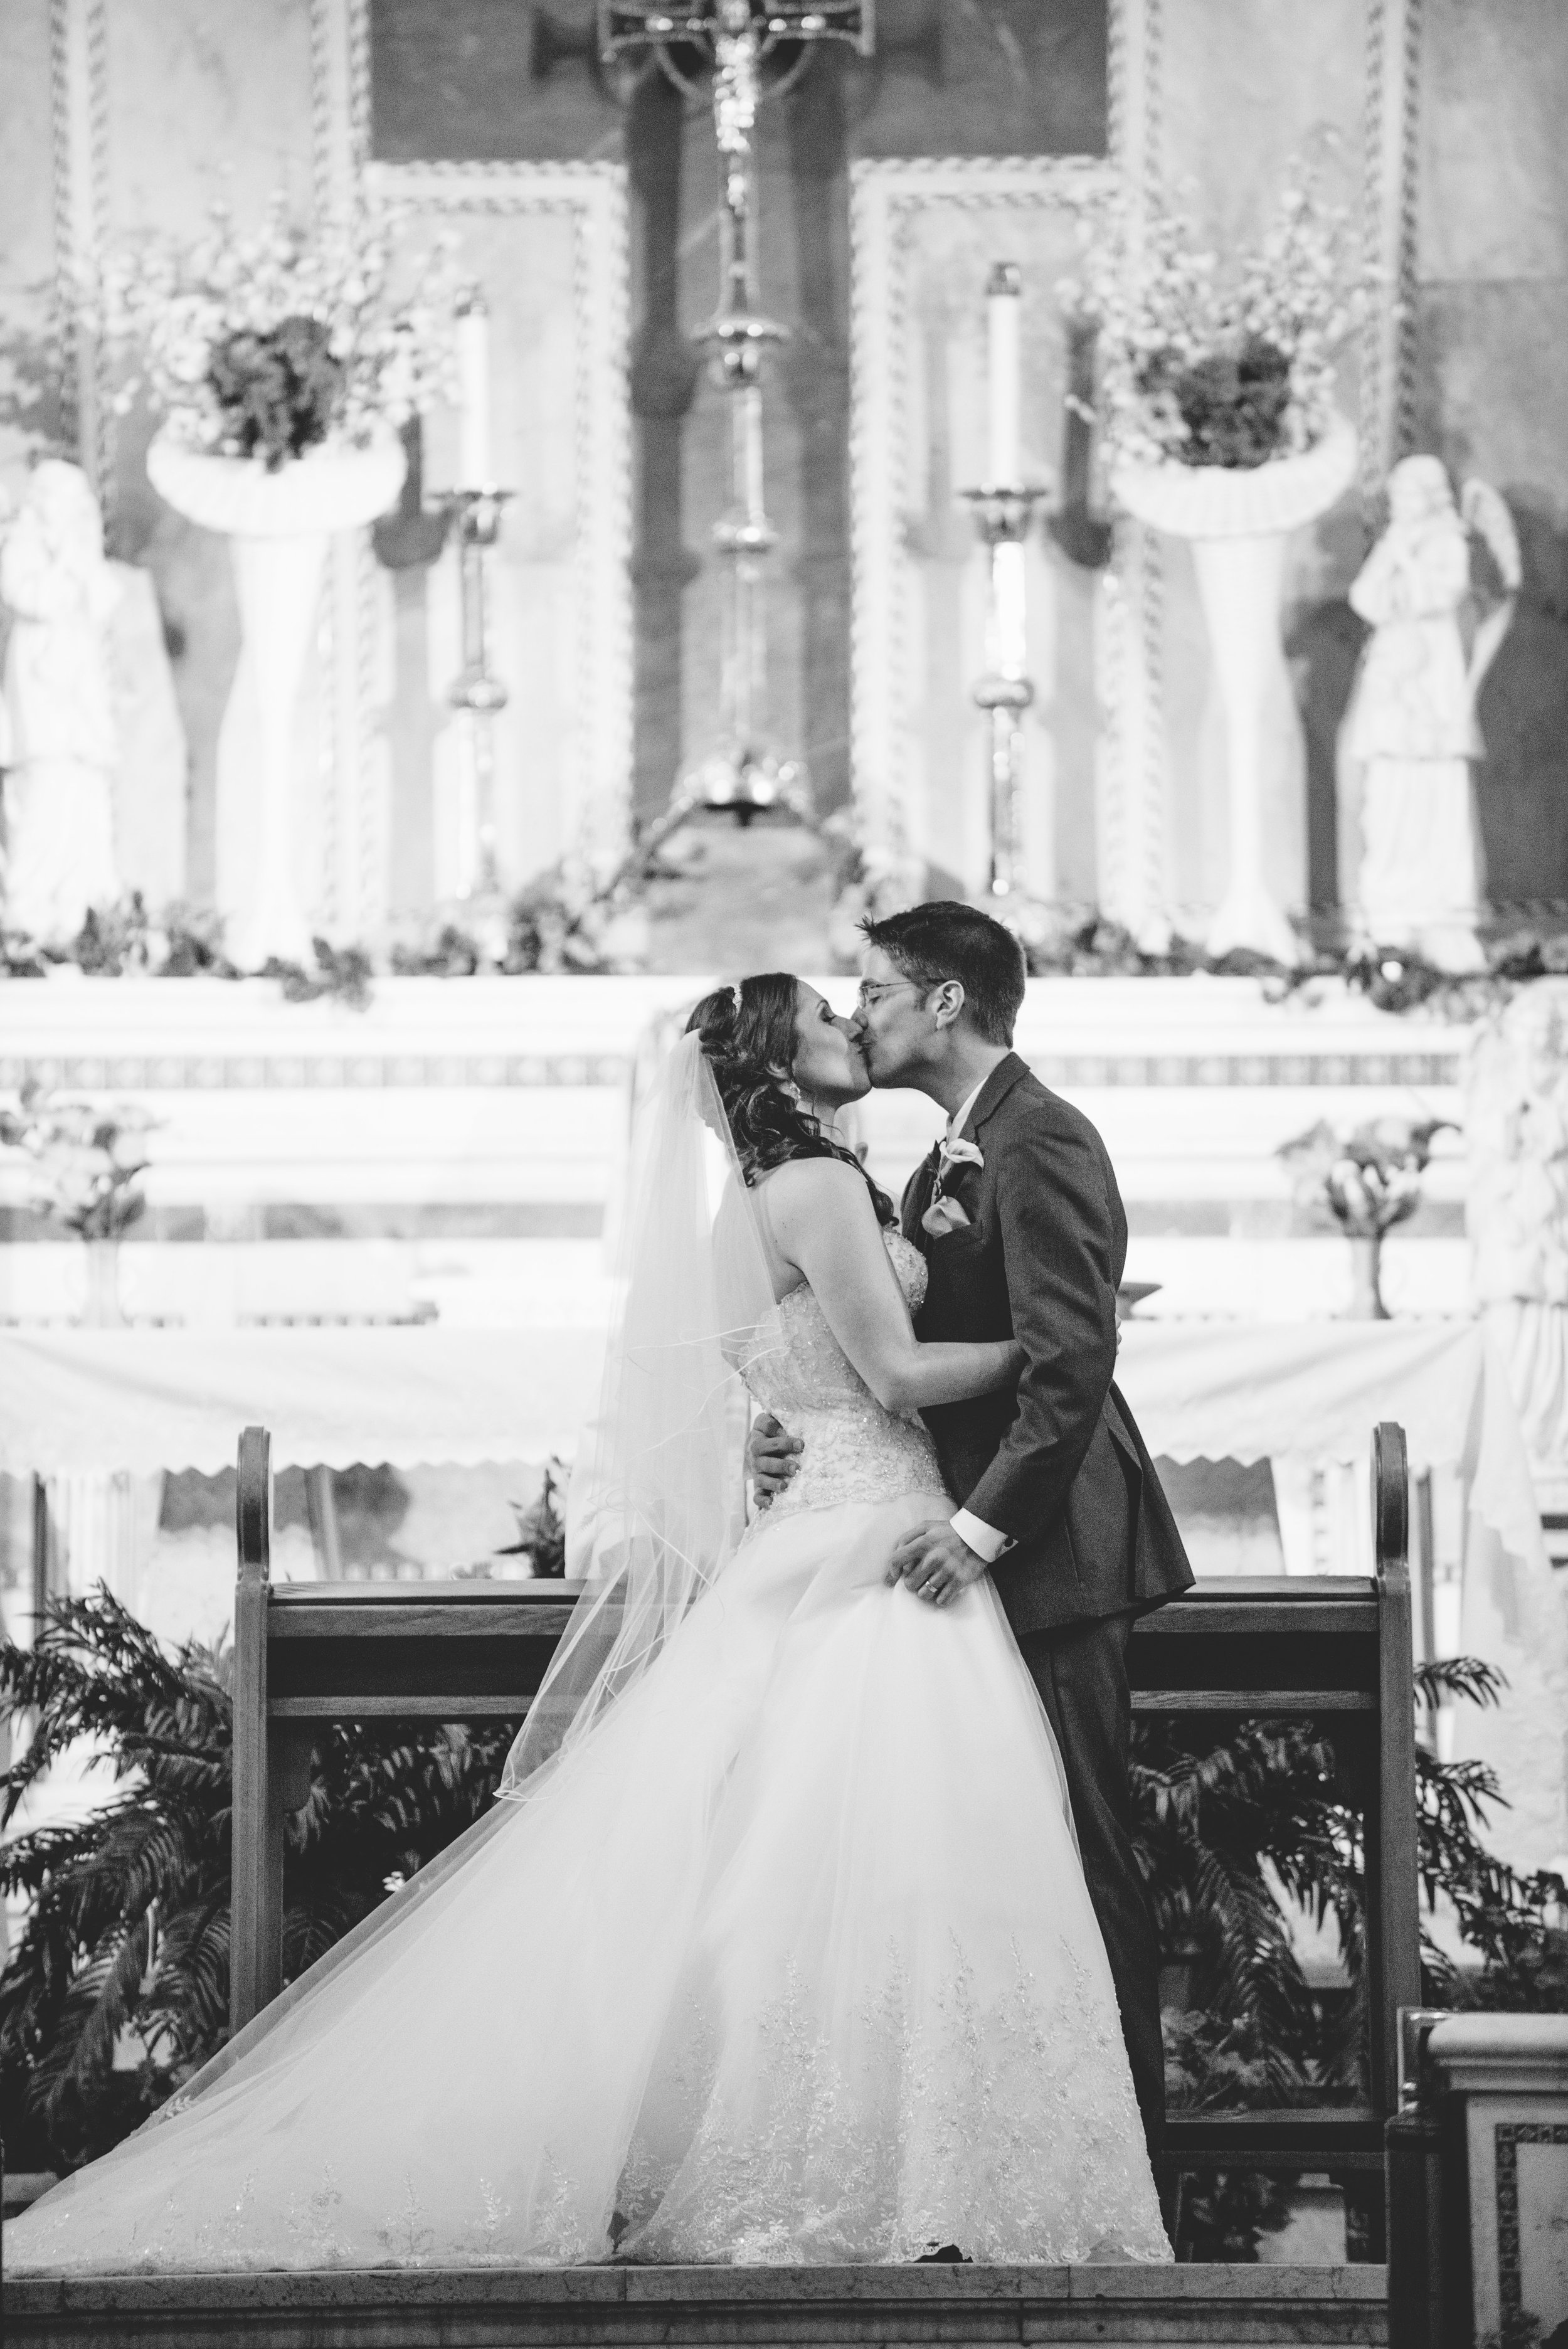 First kiss wedding ceremony // The Miner Details weddings